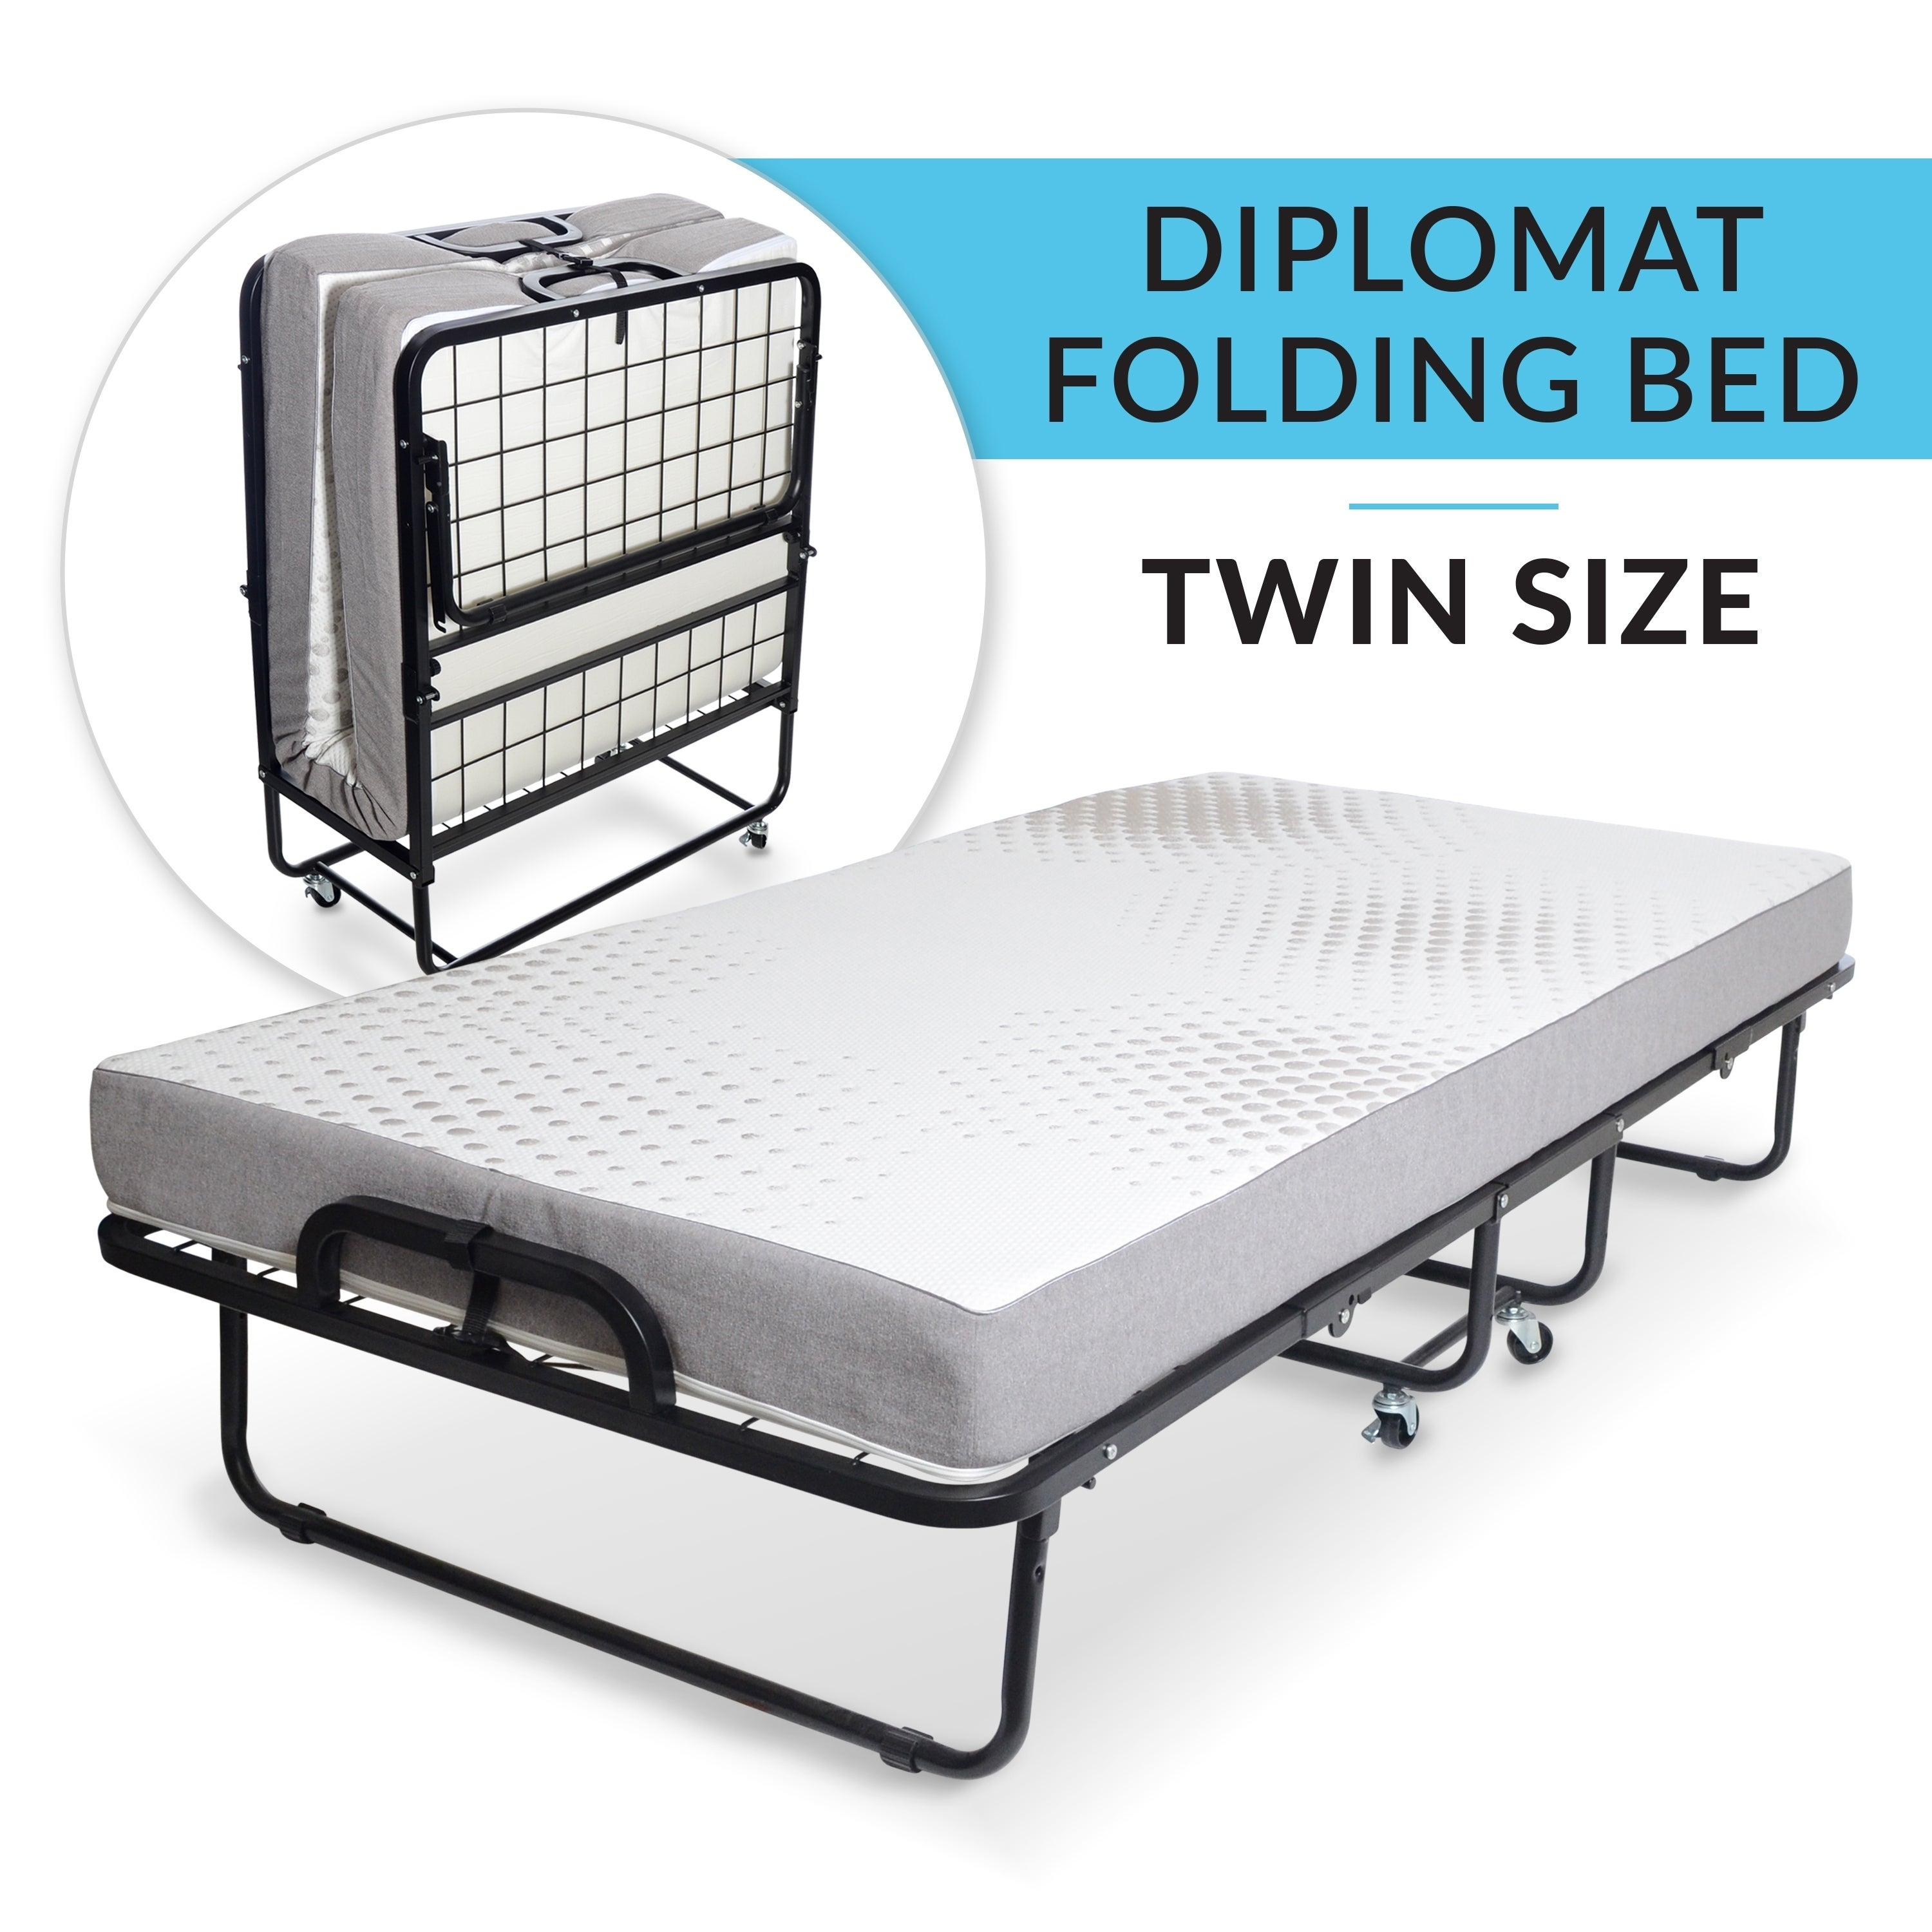 hospitality beds furnishings fold up accessories products rollaway cots bed inroom folding and